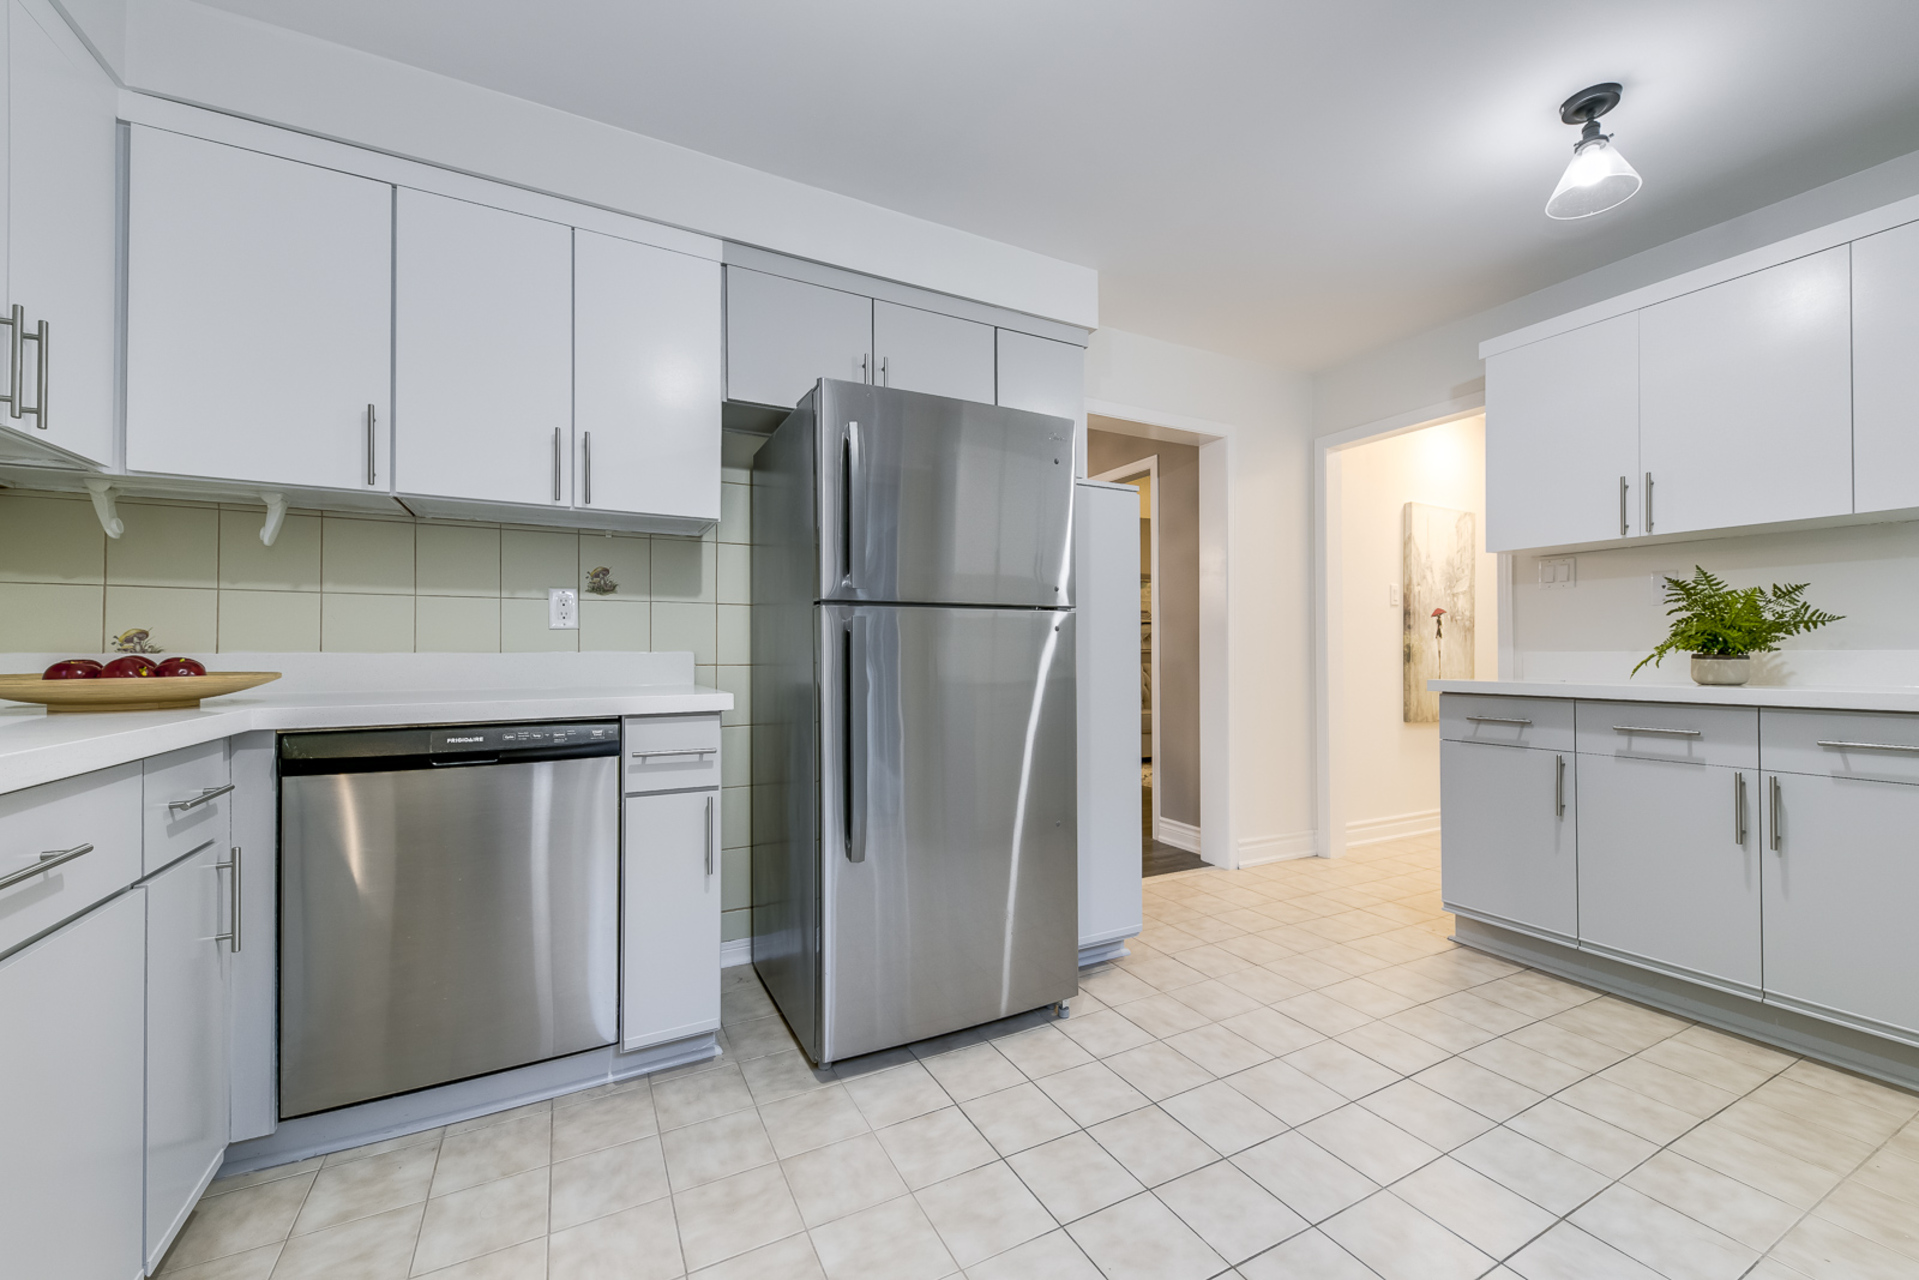 mls-25 at 4246 Wakefield Crescent, Creditview, Mississauga